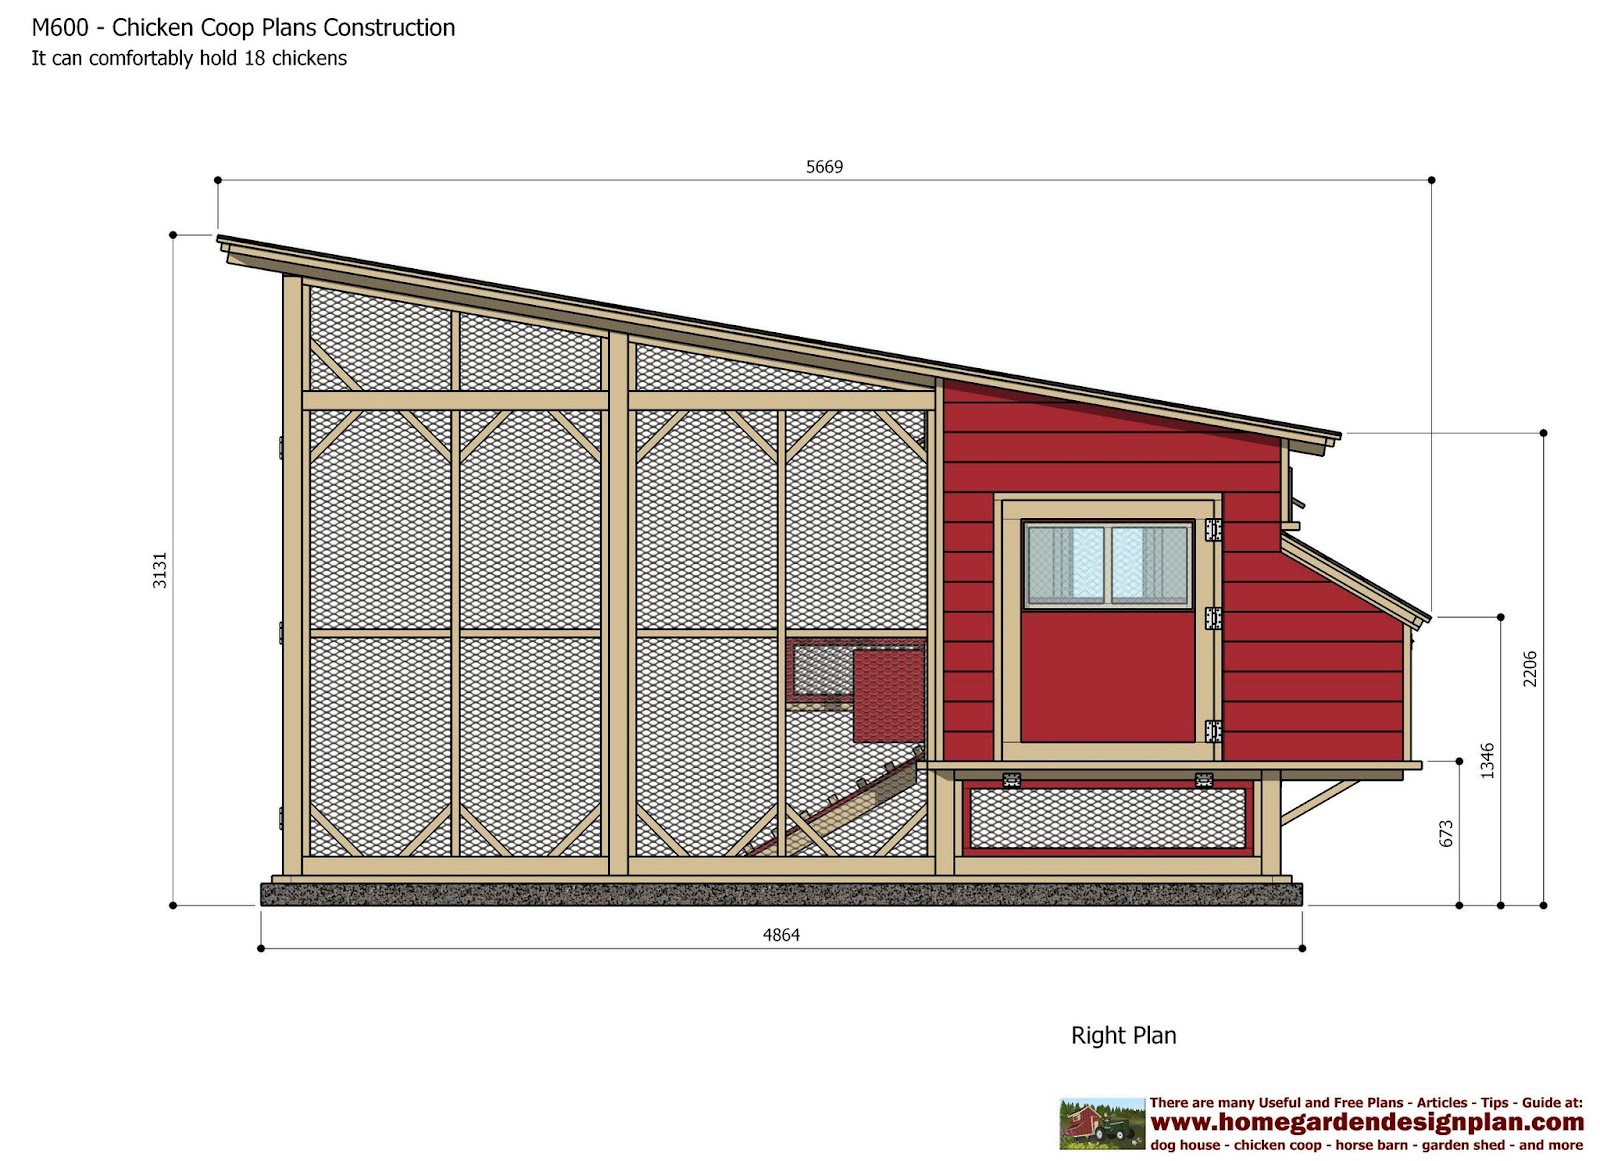 Chcken coop m600 chicken coop plans construction chicken for Plans for a chicken coop for 12 chickens